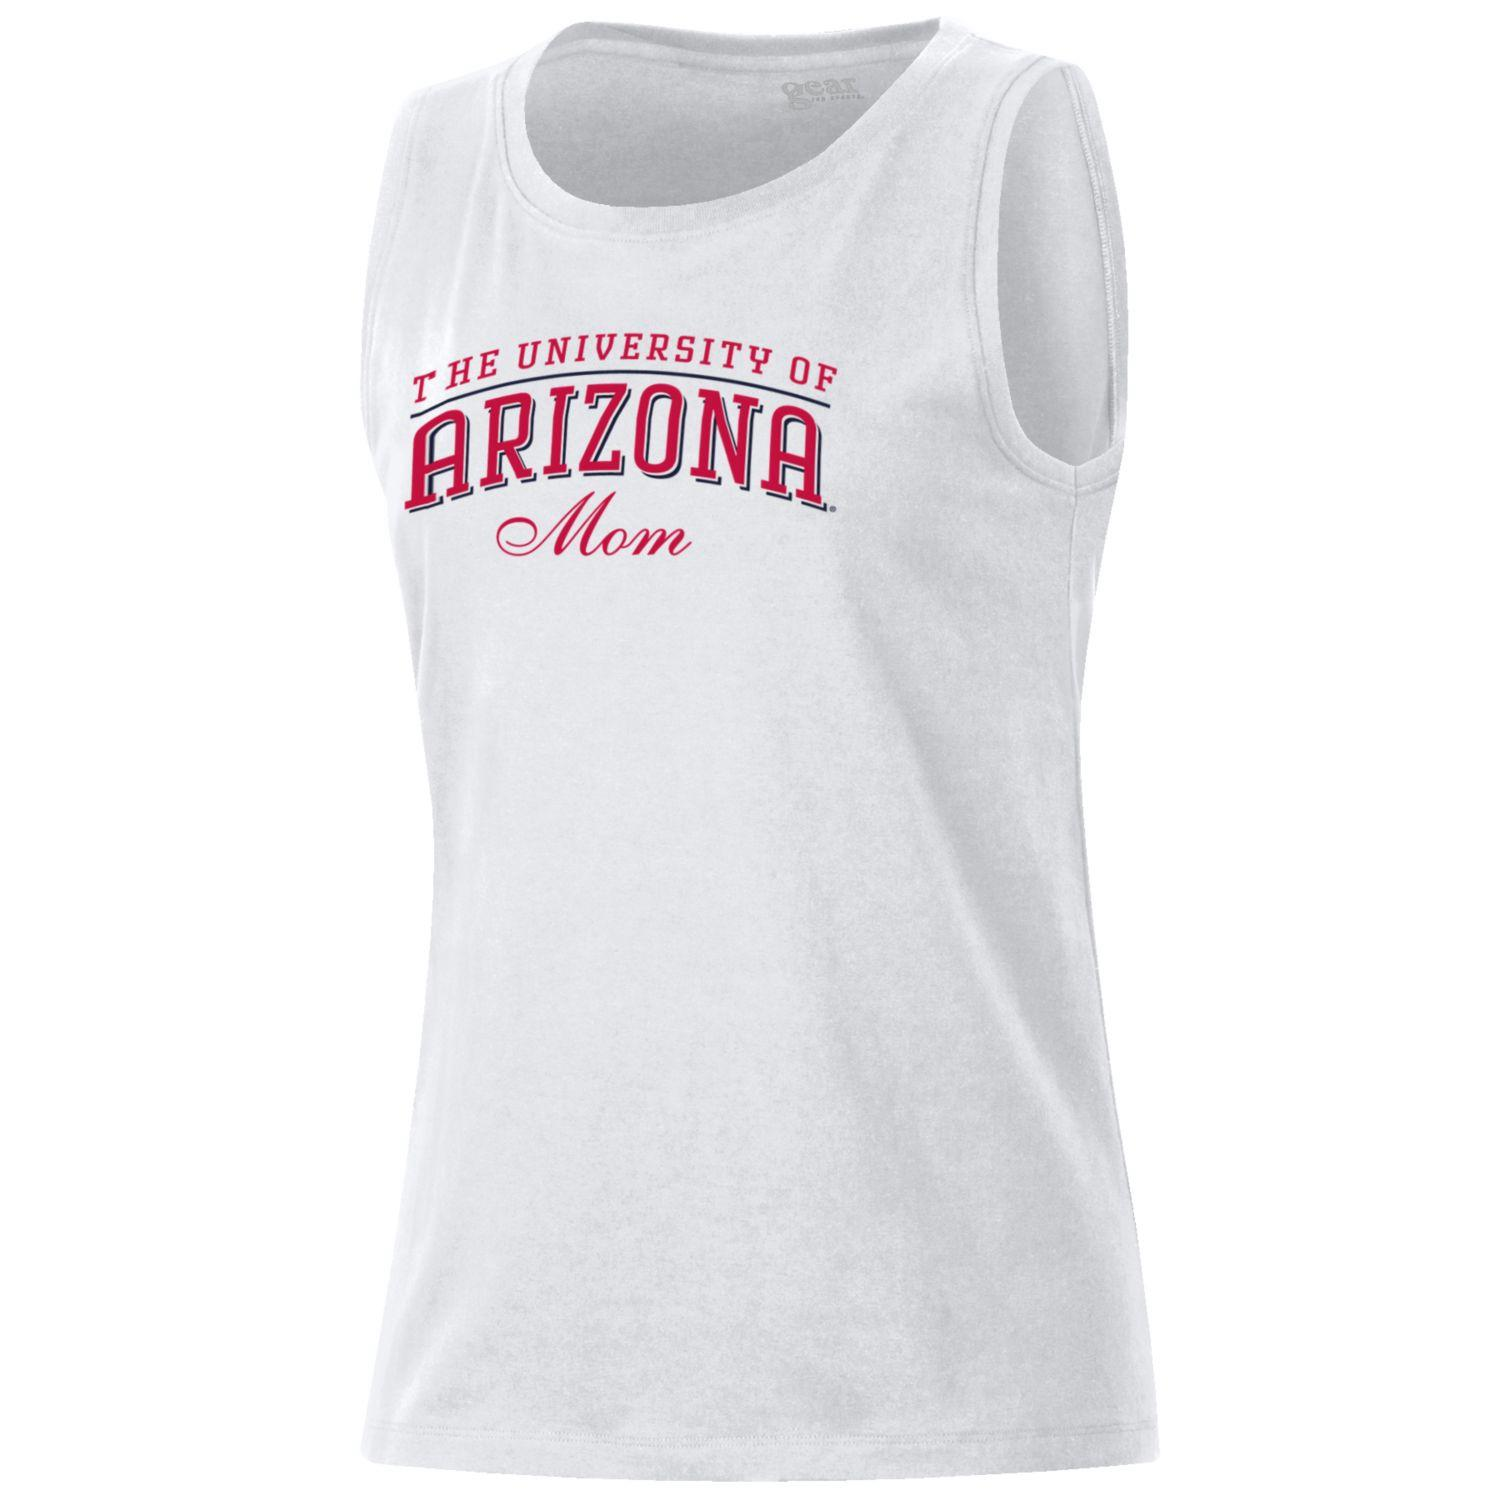 Image For Gear: Arizona University of MOM Muscle Tee - White